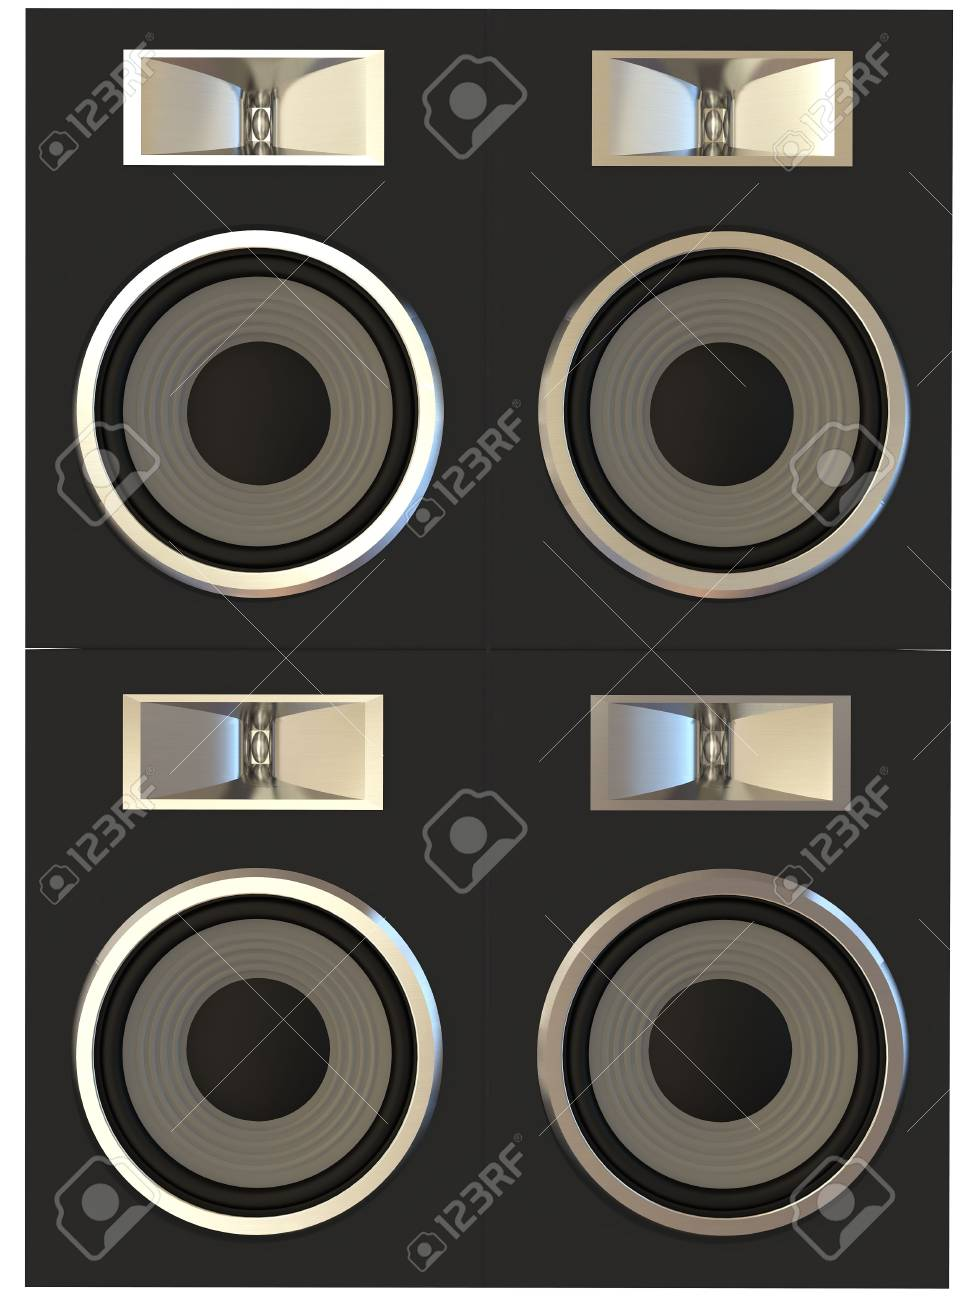 3d rendering of four loudspeakers  on white background Stock Photo - 4691842